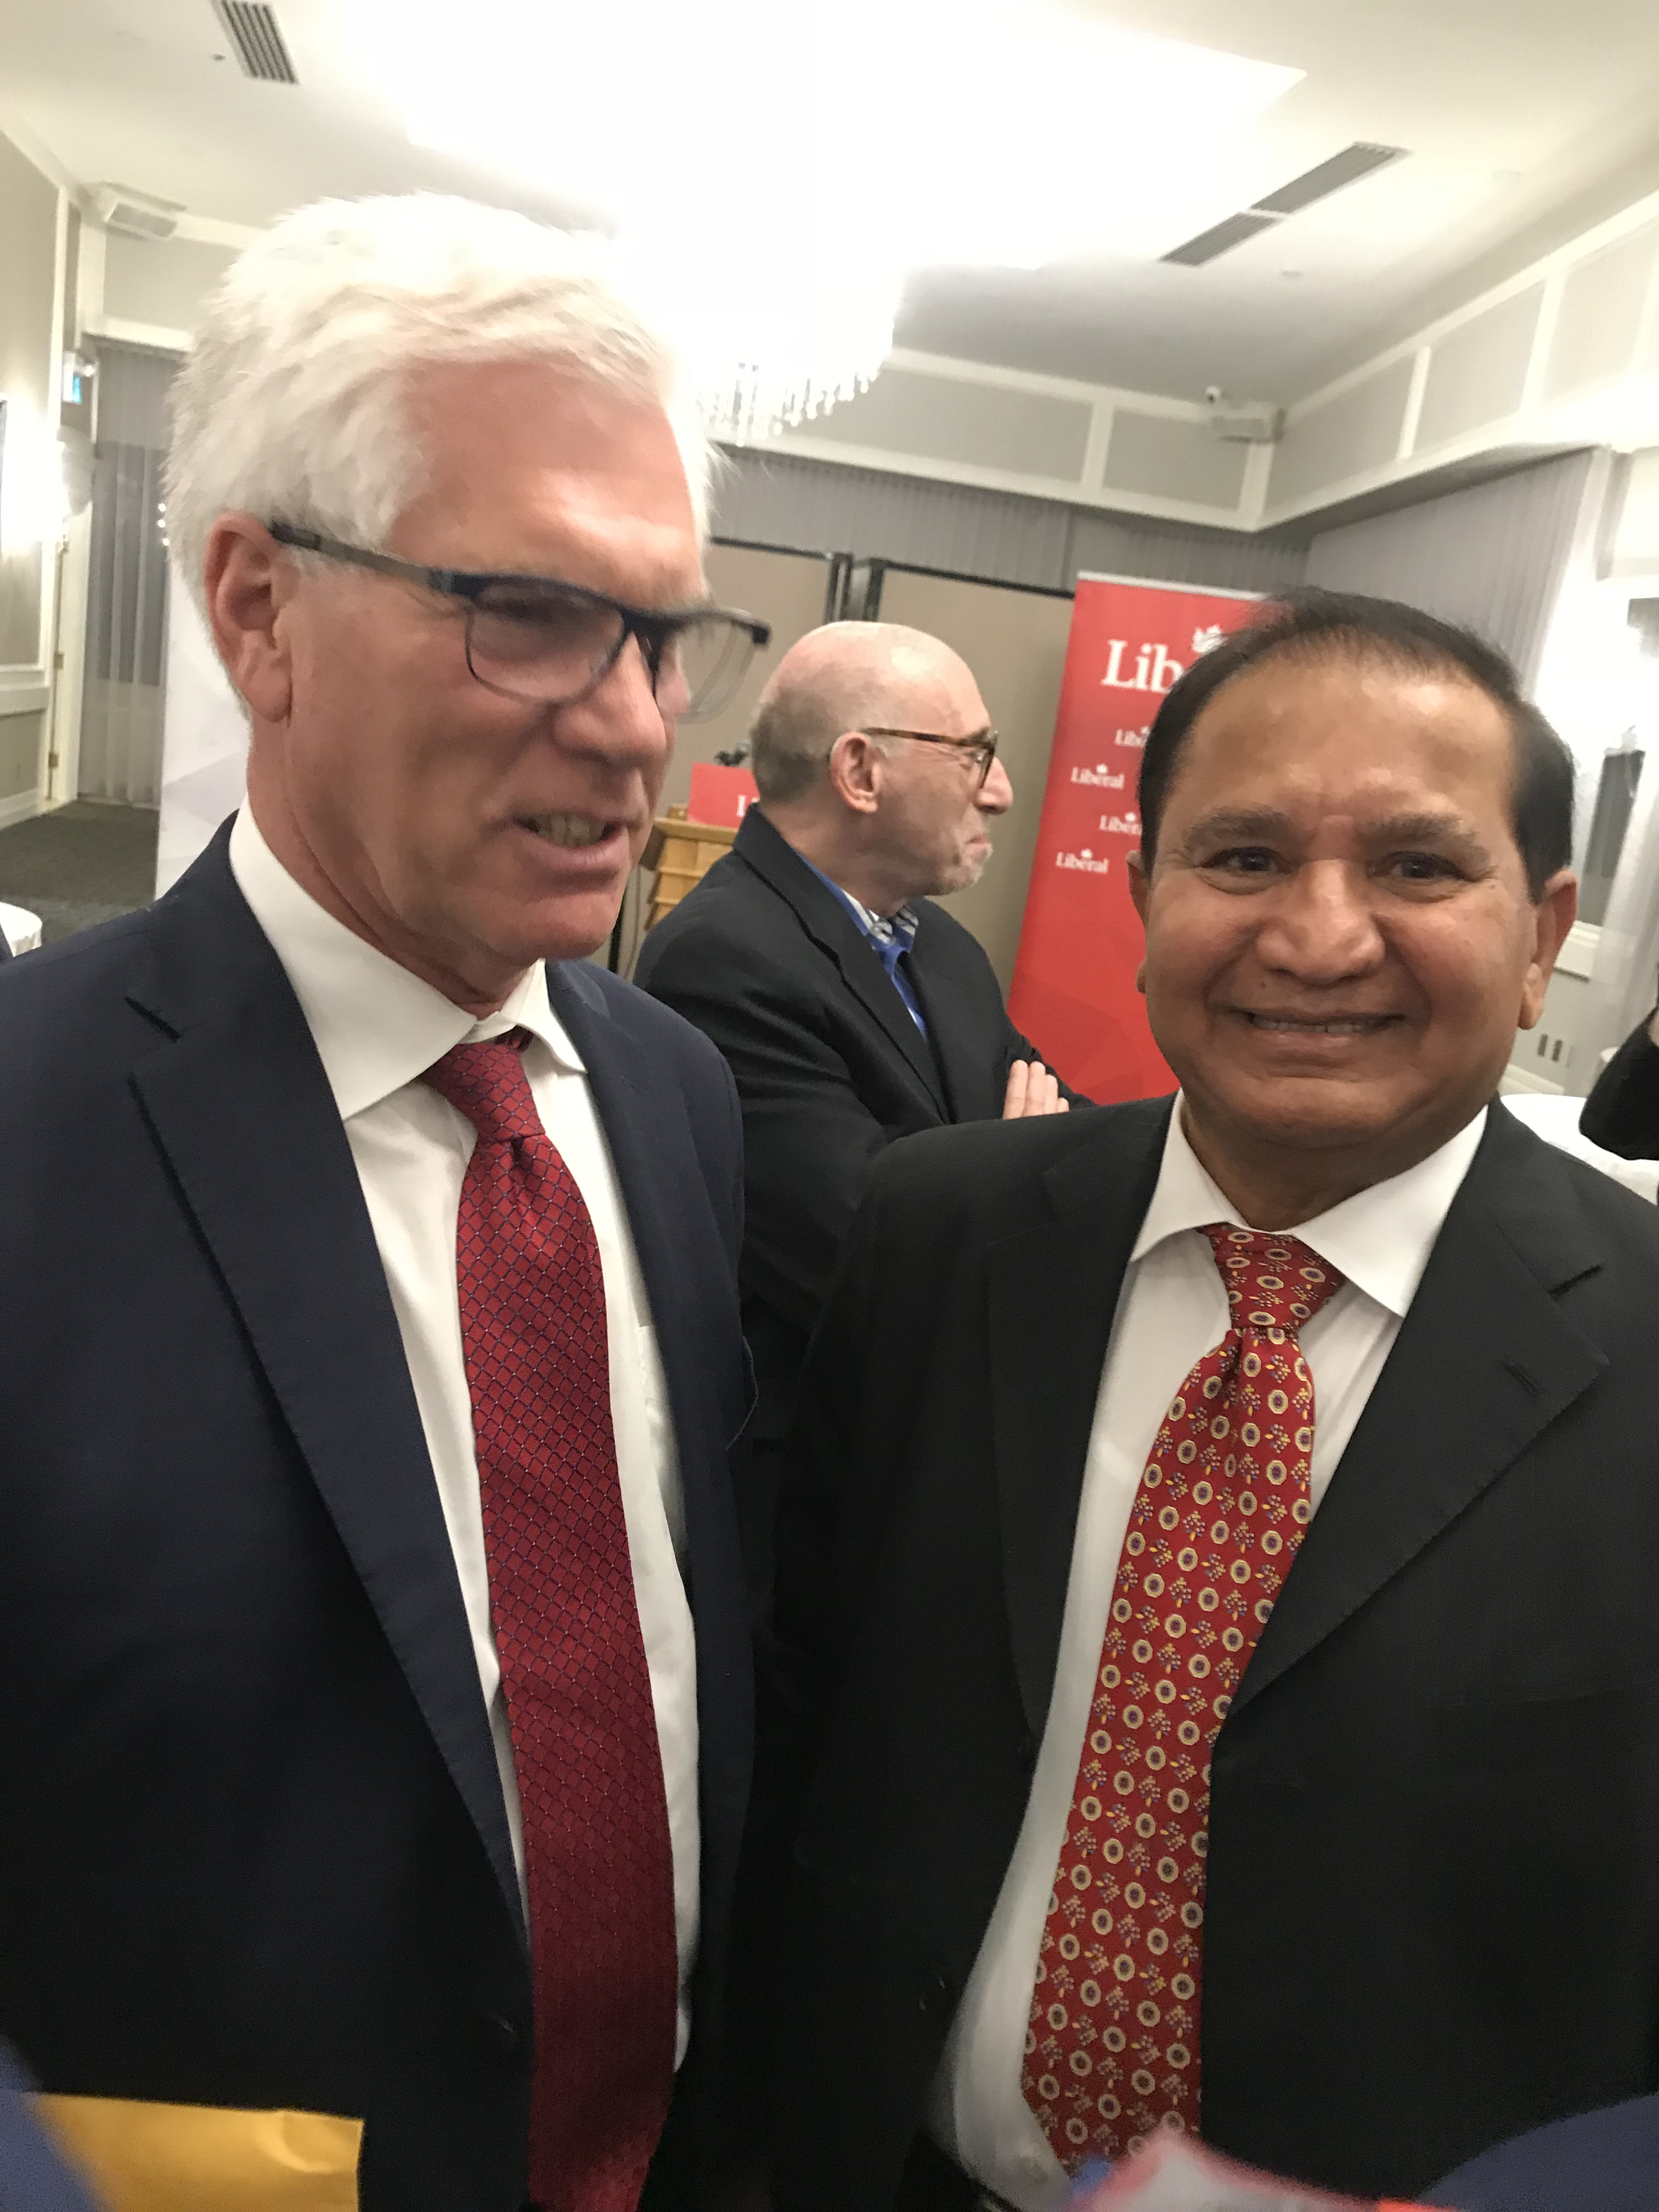 Our CEO Mike Mehta with Minister of International Trade Diversification, Honorable Jim Carr